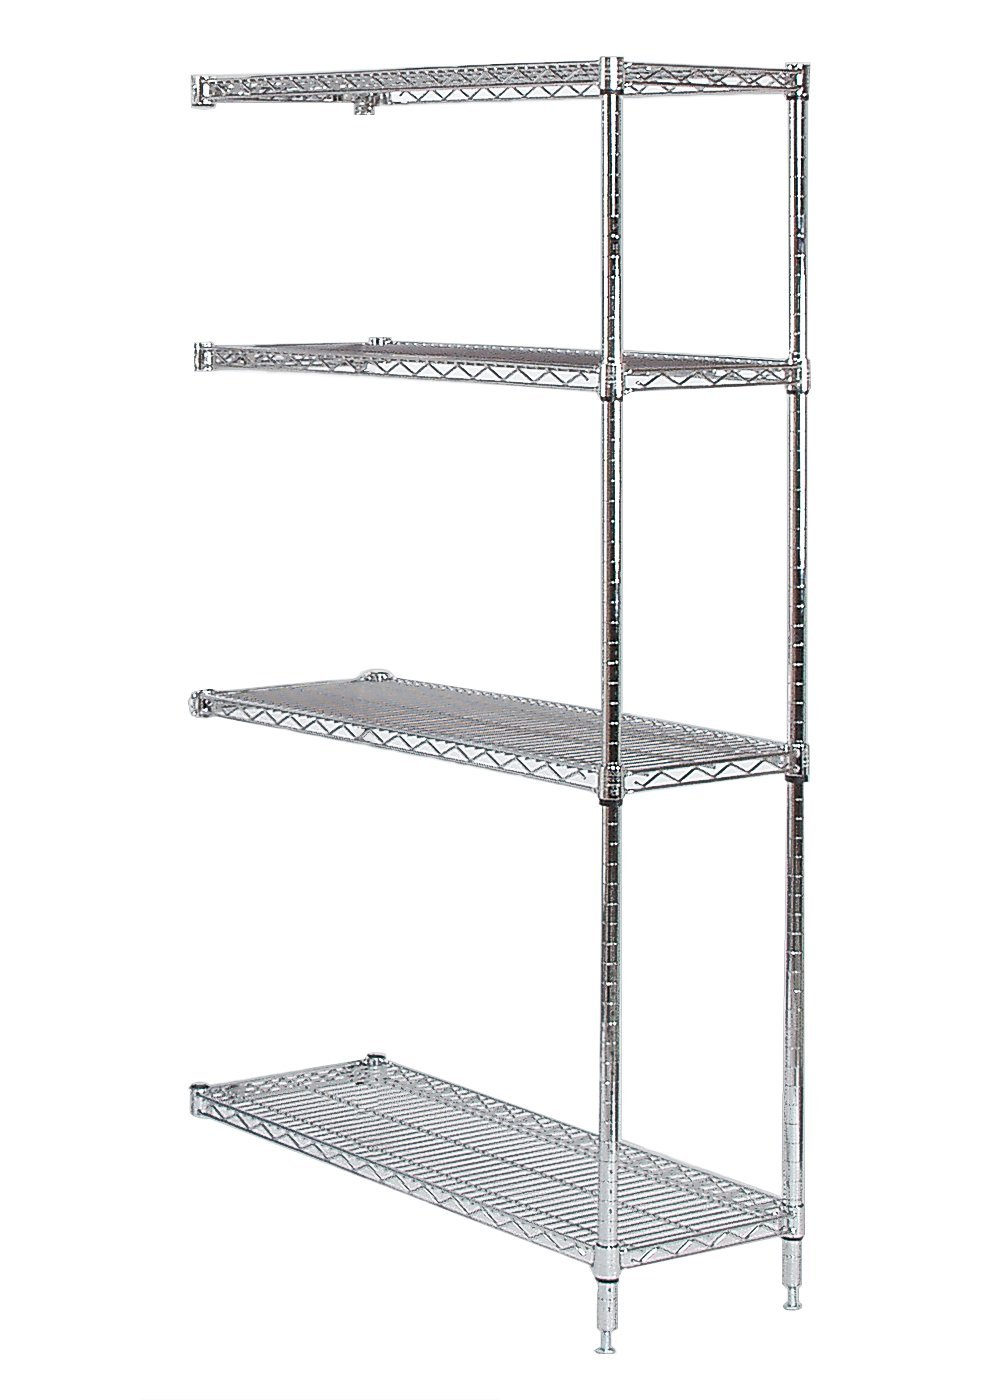 "Tarrison A14306c Chrome Shelves Add-on Unit, 30"" Length"